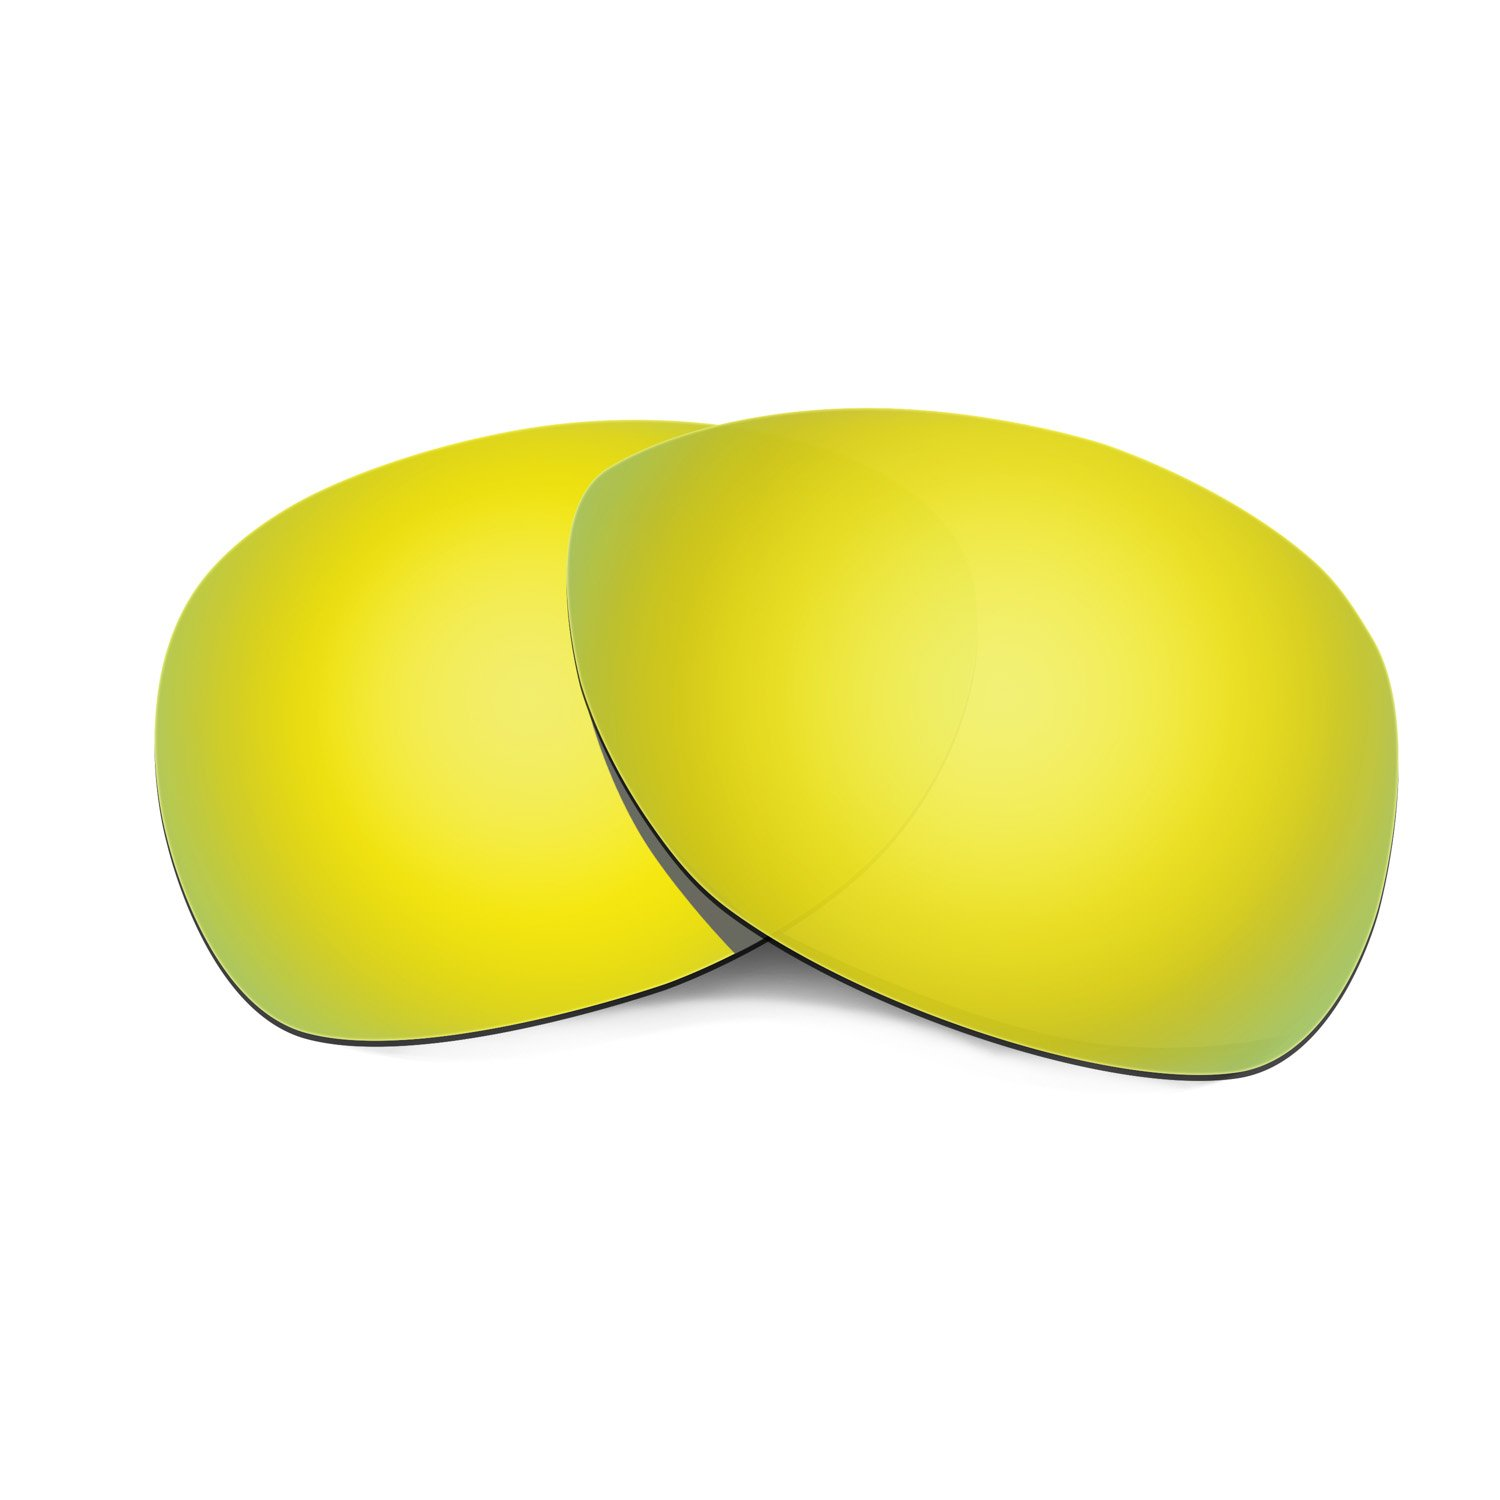 Hkuco Plus Replacement Lenses For Oakley Crosshair (2012) 1 pair